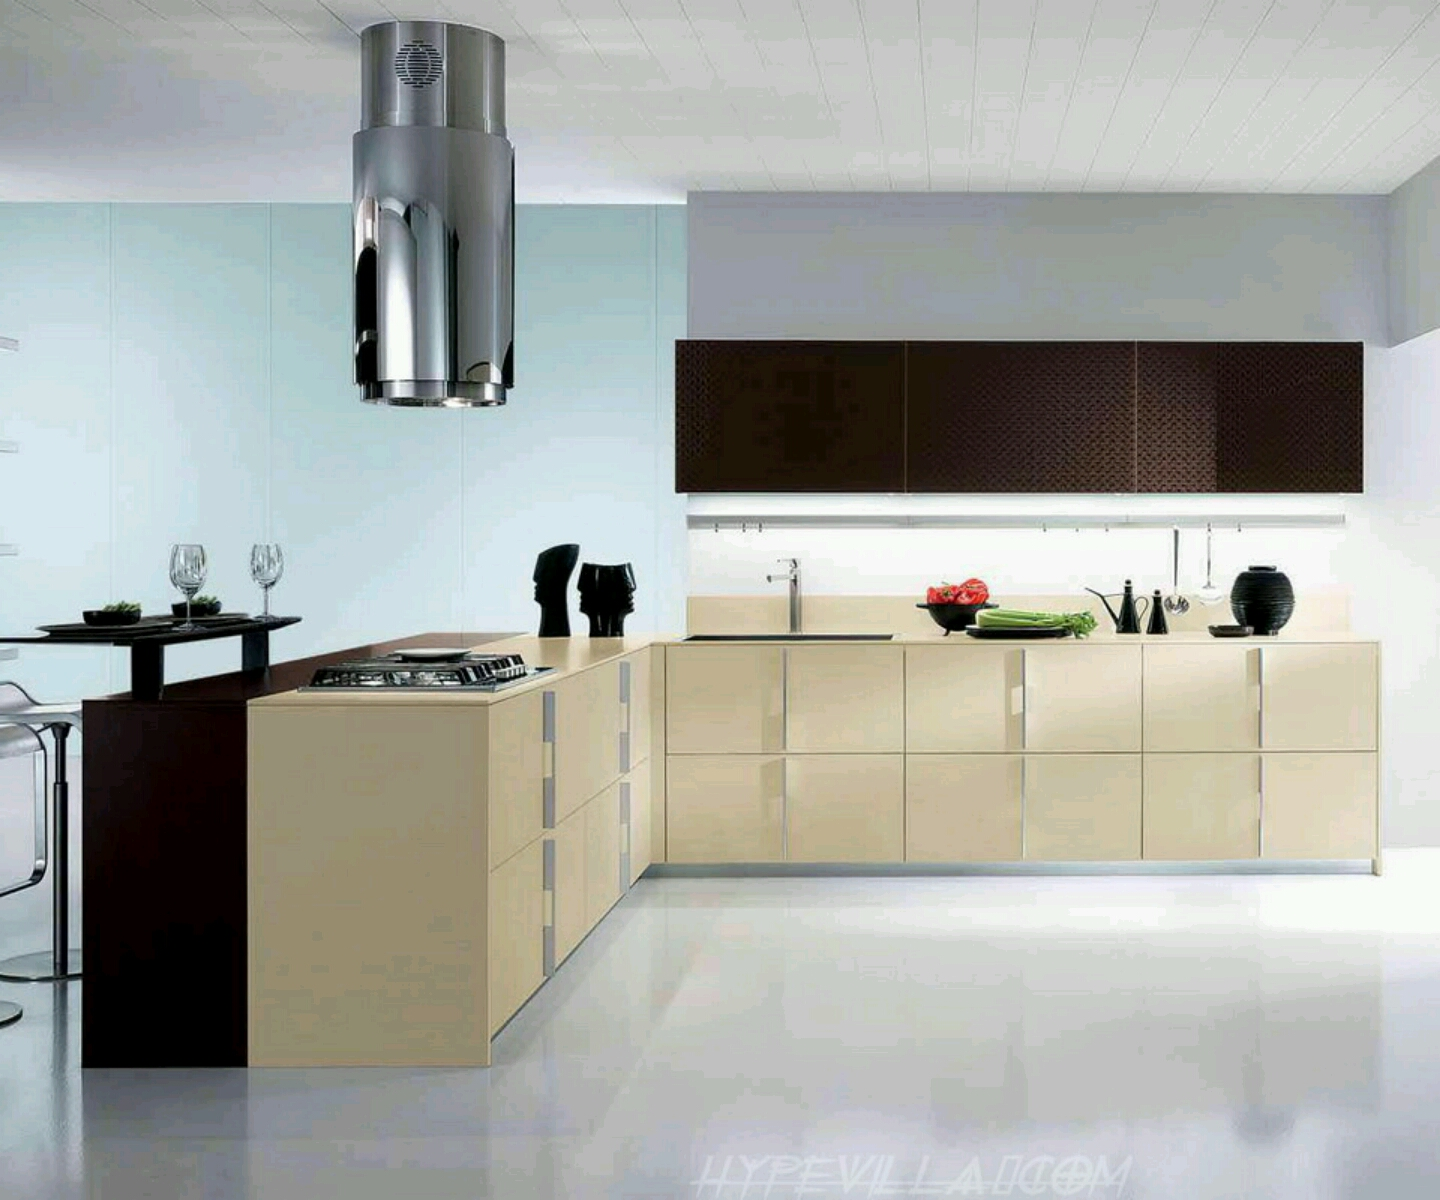 Modern kitchen cabinets designs furniture gallery - Images of modern kitchen designs ...